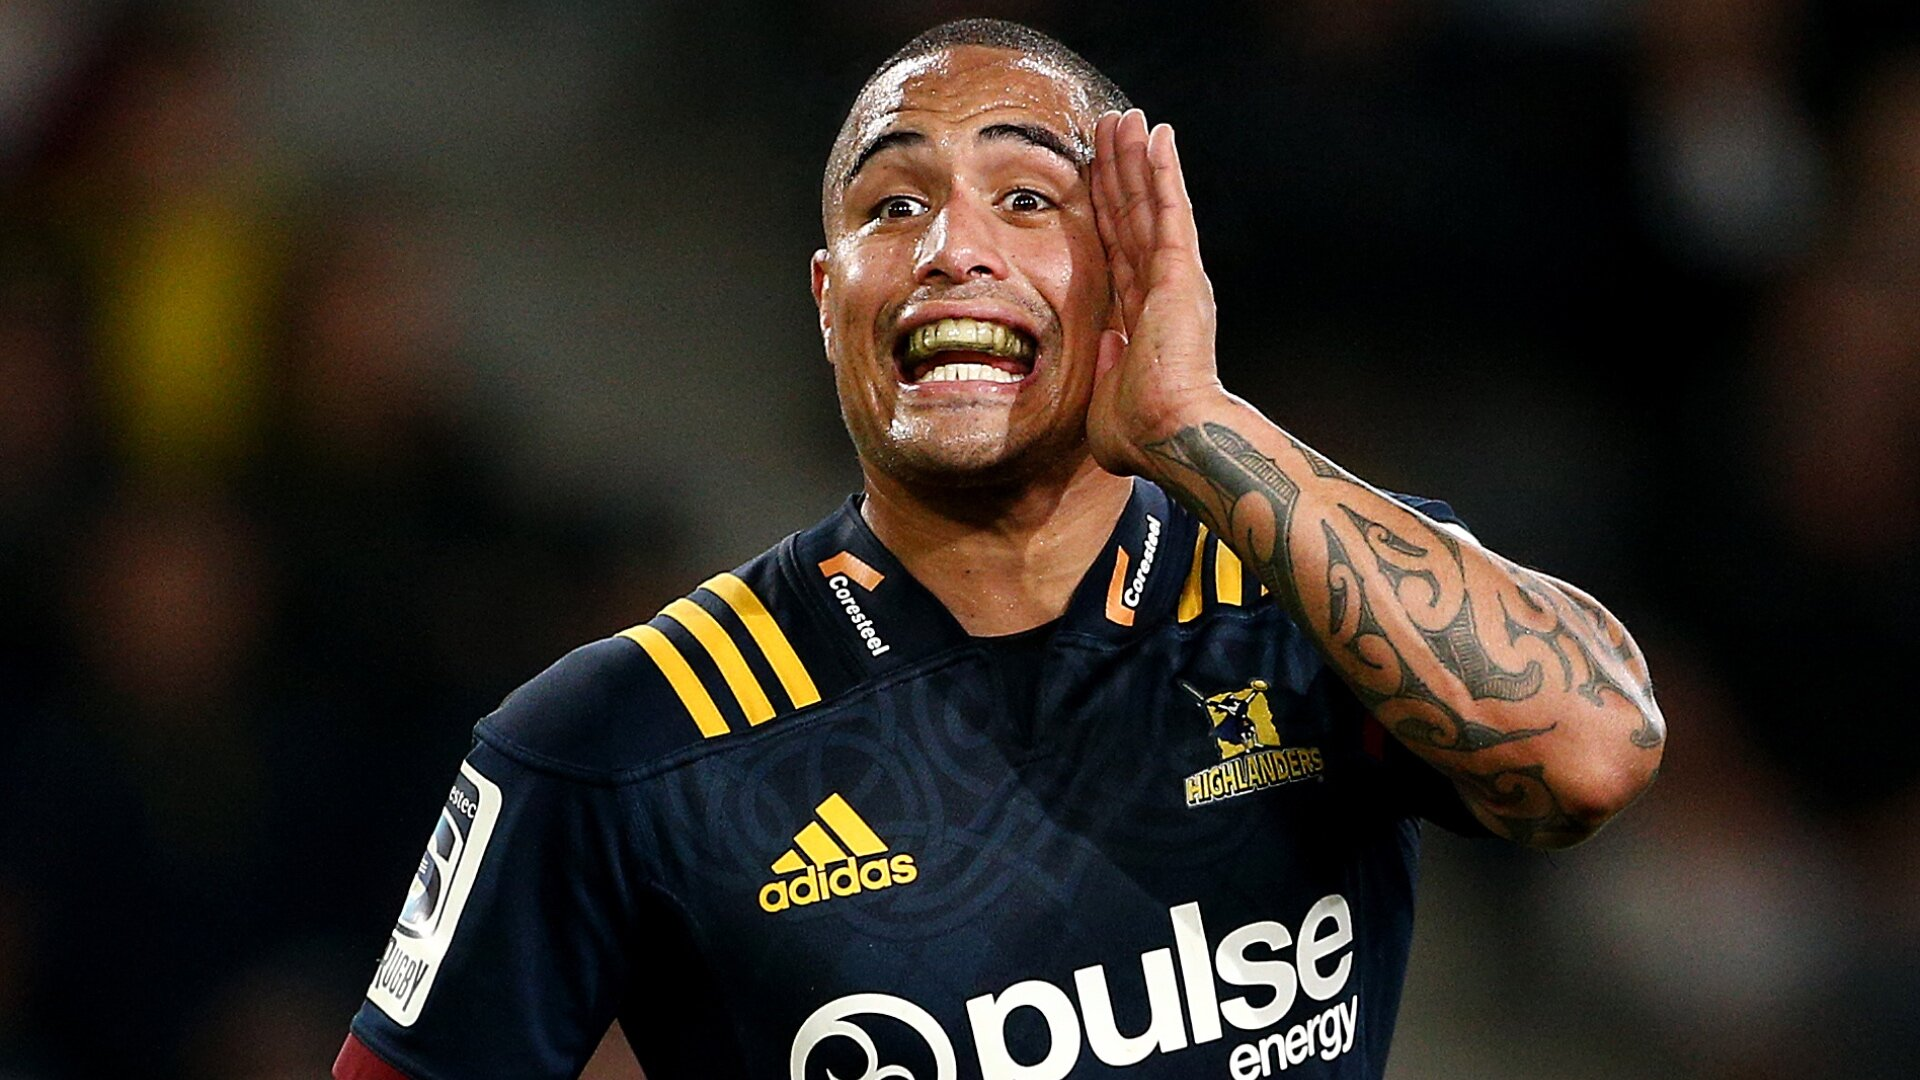 Why the North is tipped by fans to win the all-New Zealand bragging rights